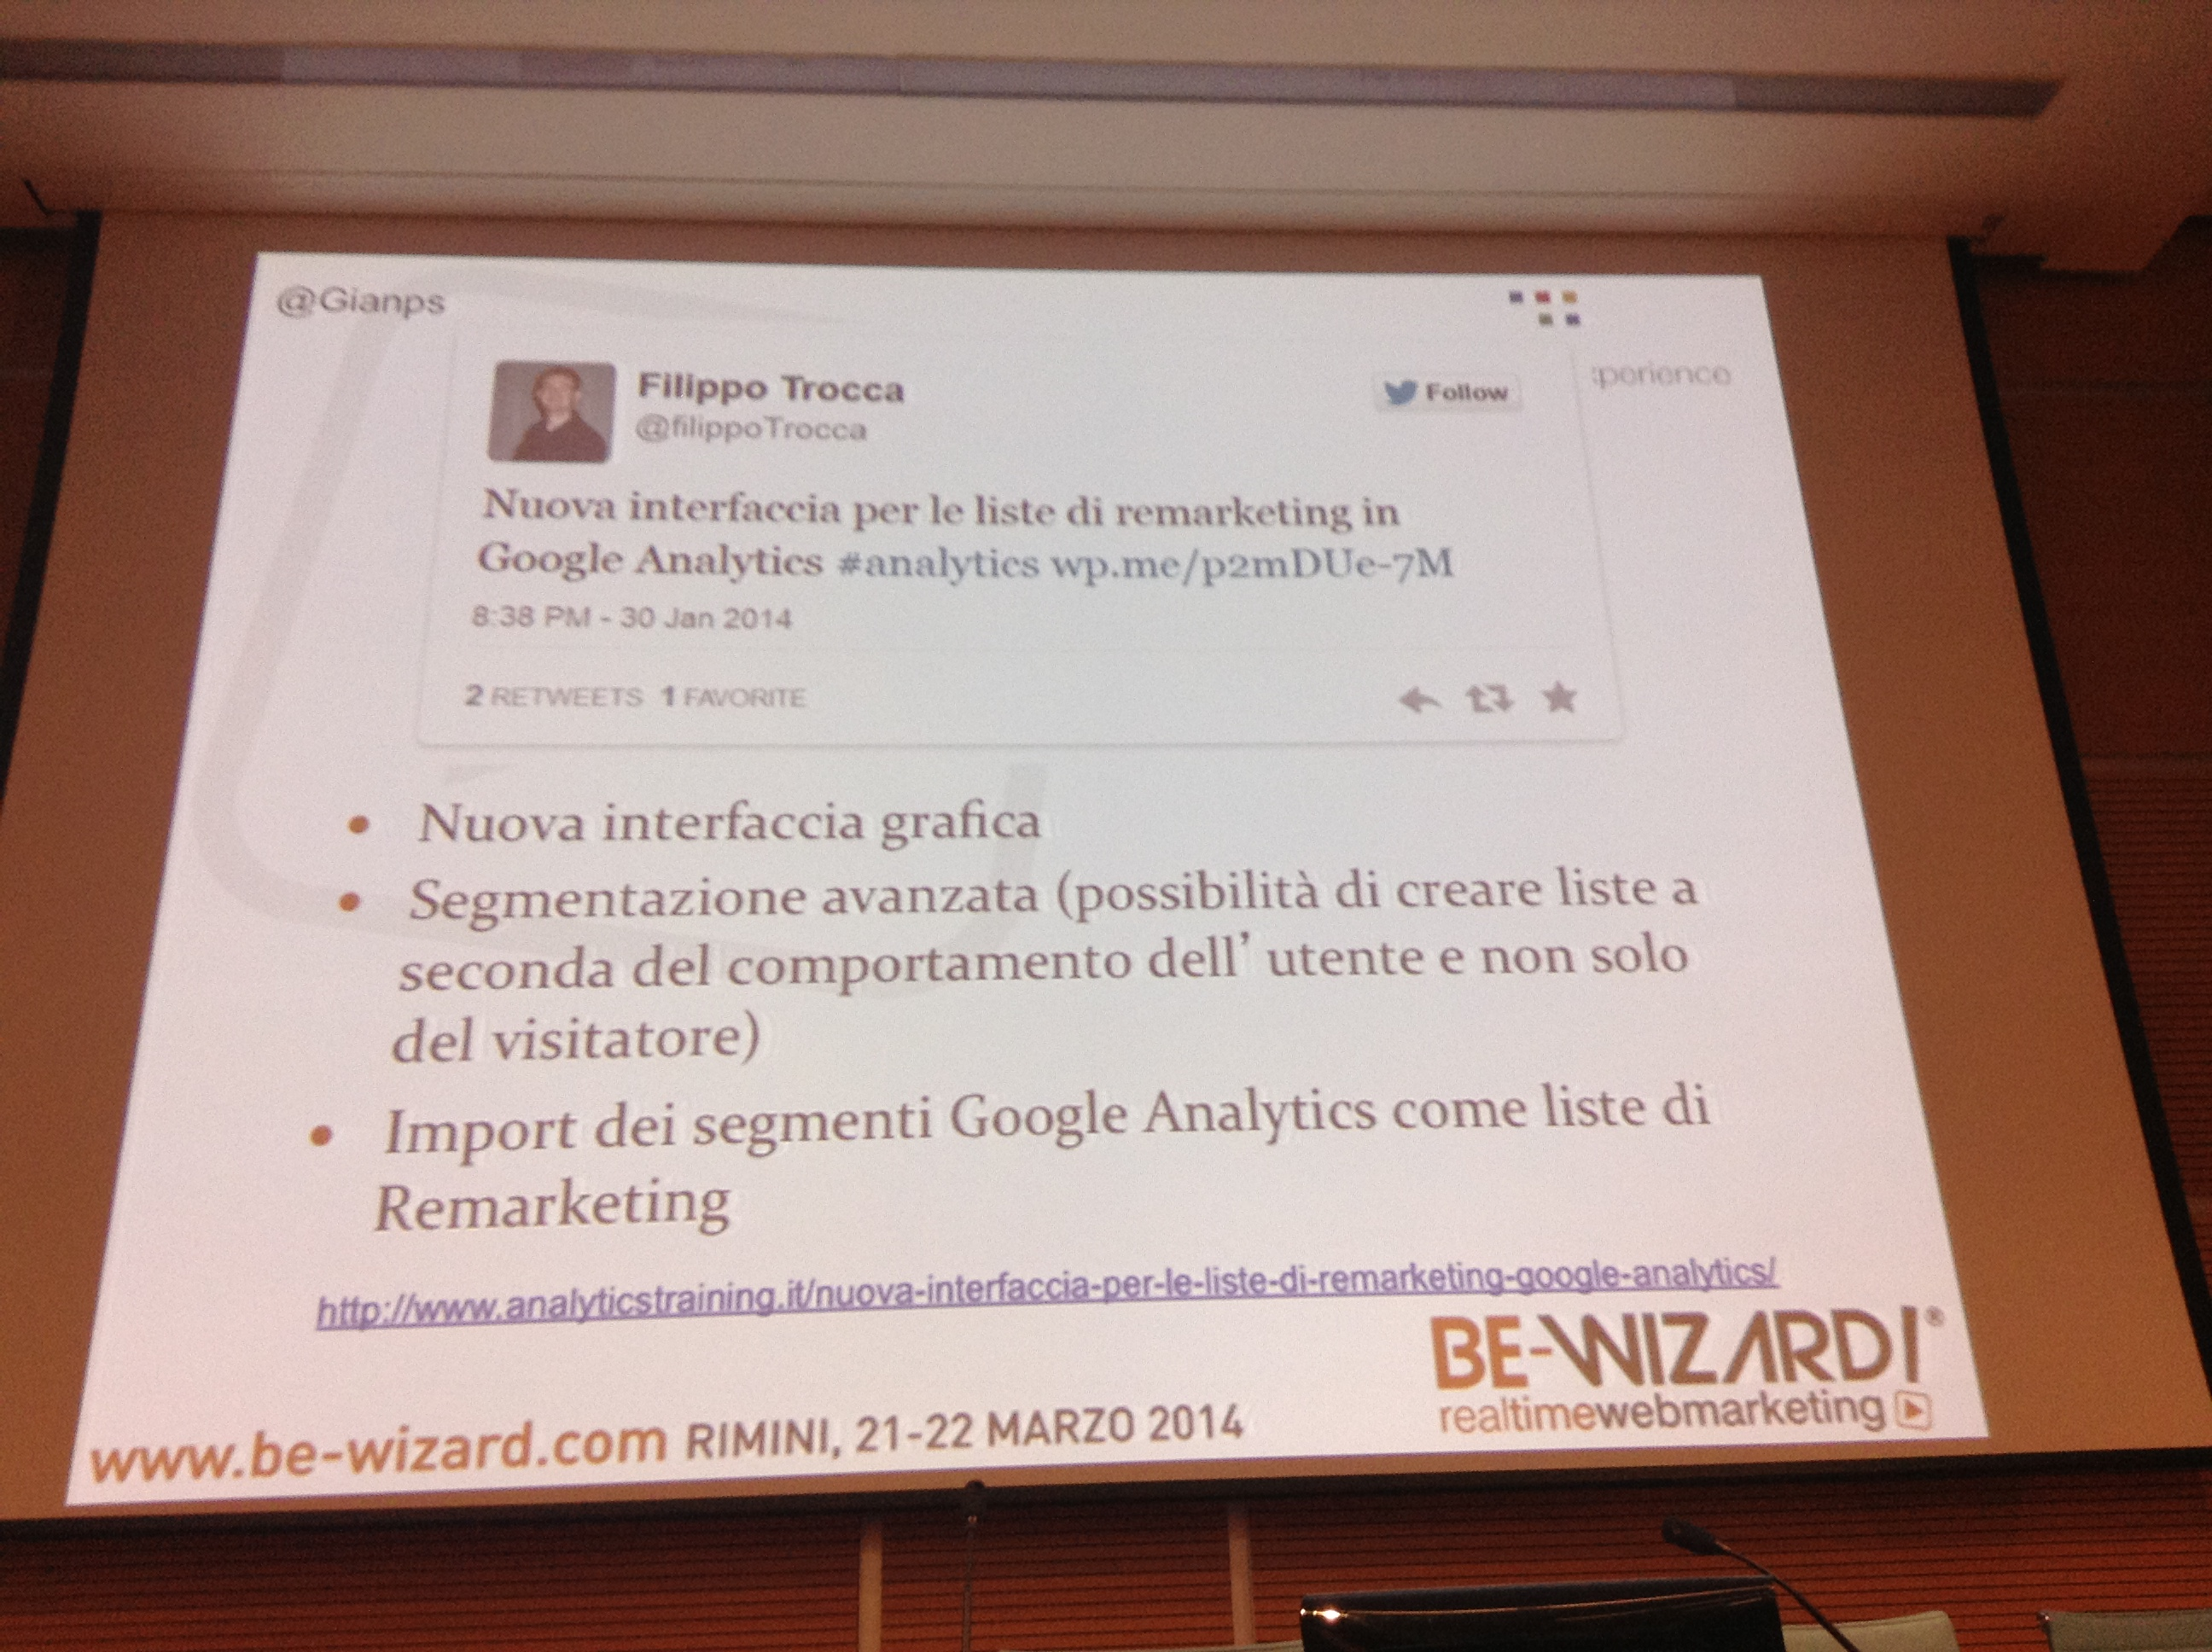 liste di remarketing